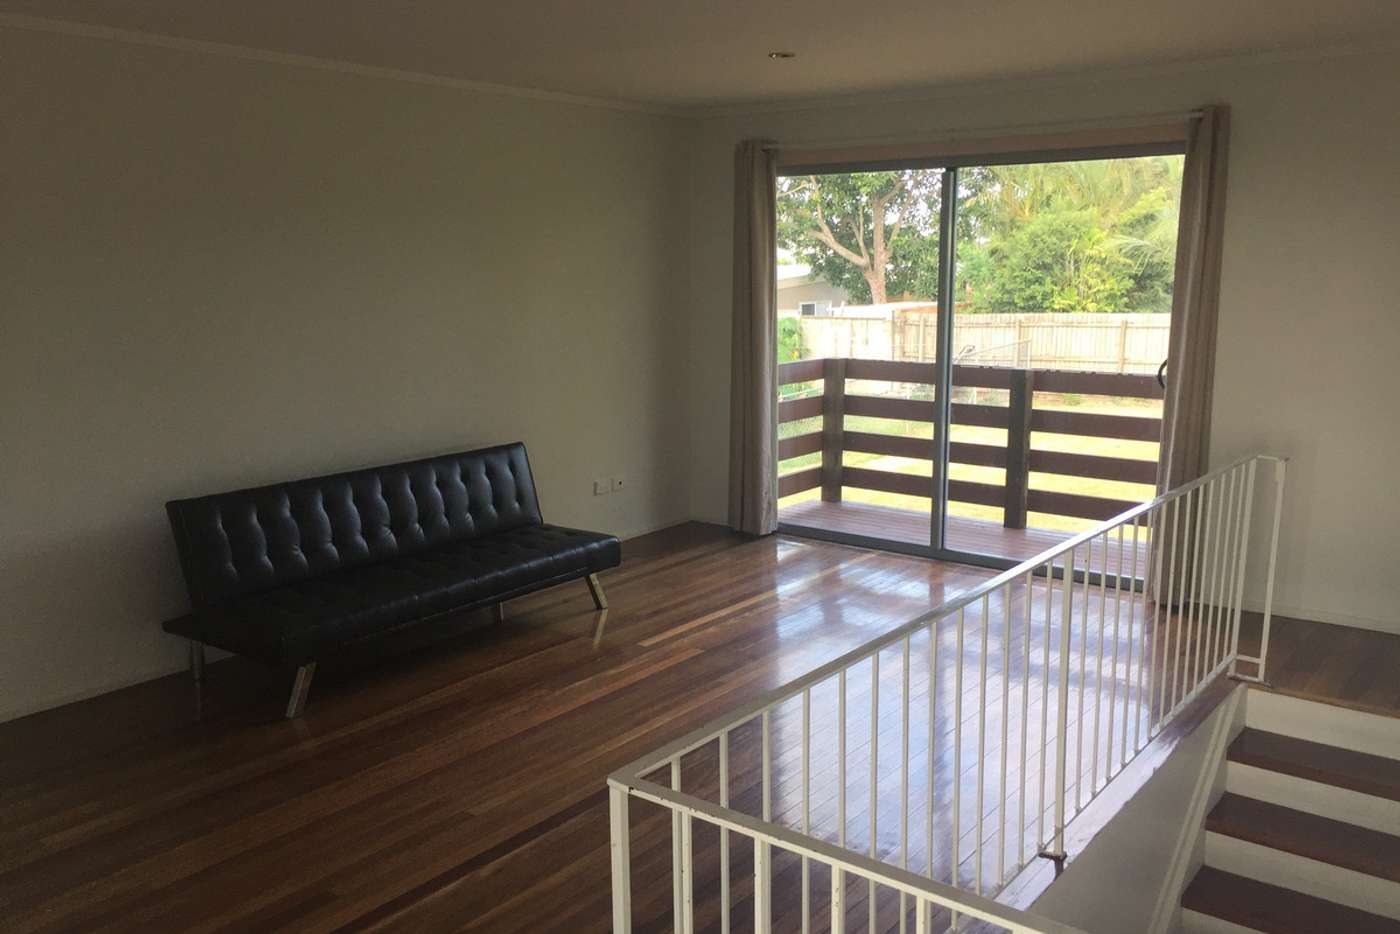 Main view of Homely house listing, 12 Lawford Street, Sunnybank QLD 4109